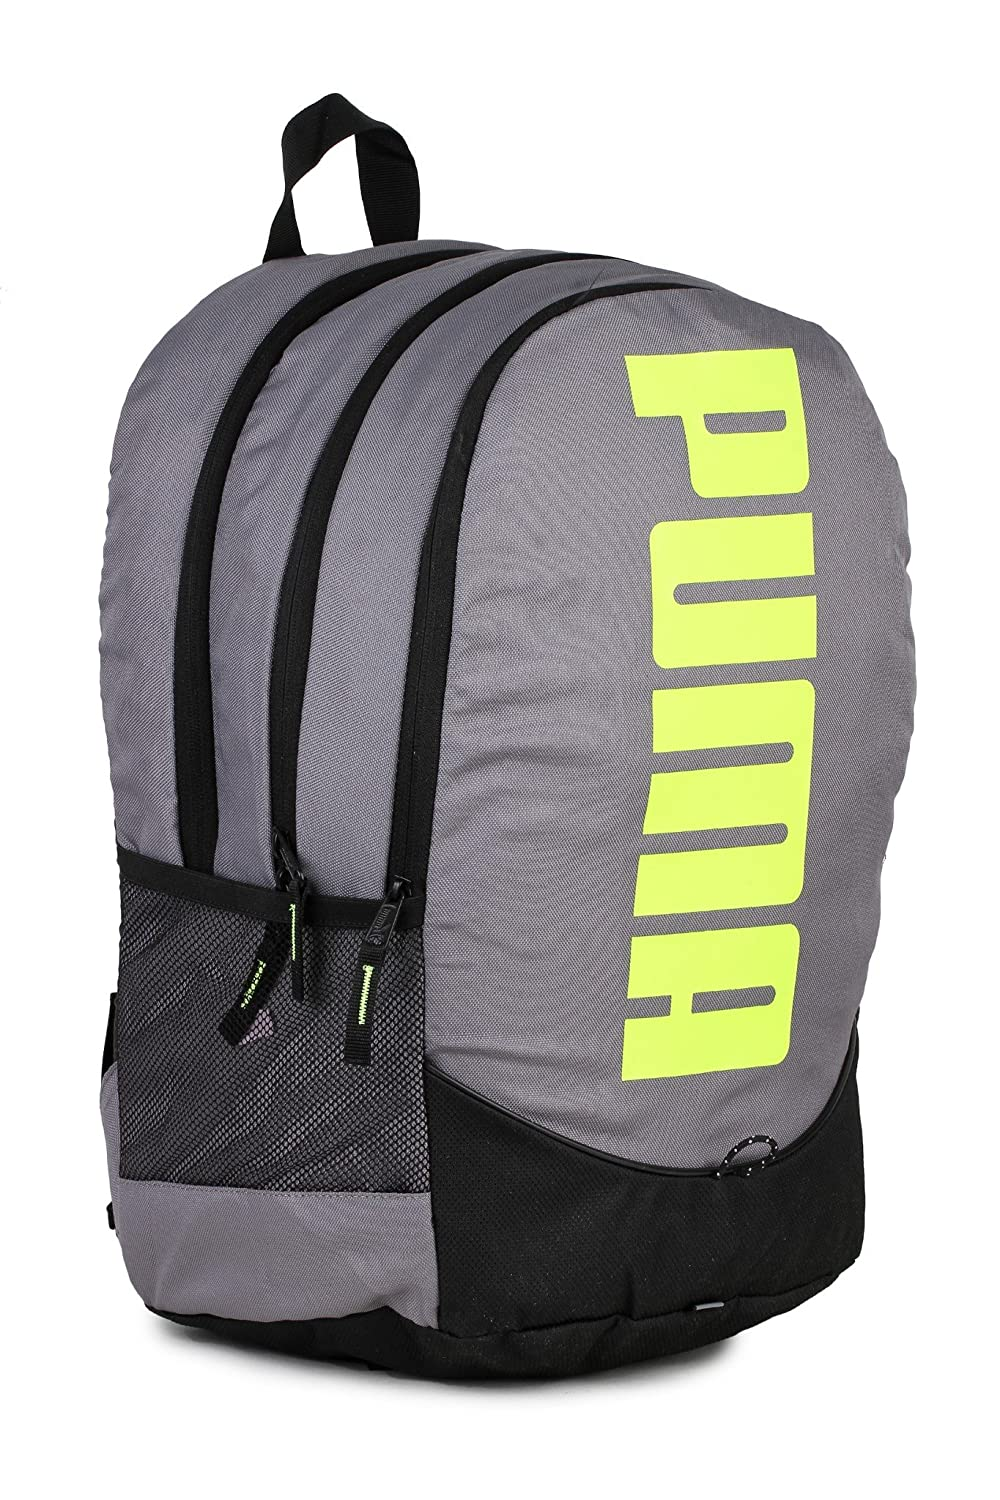 9ff18cfed3d3 ... Puma Gray Violet and Fluo Pink Laptop Backpack (7593301) Amazon.in Bags